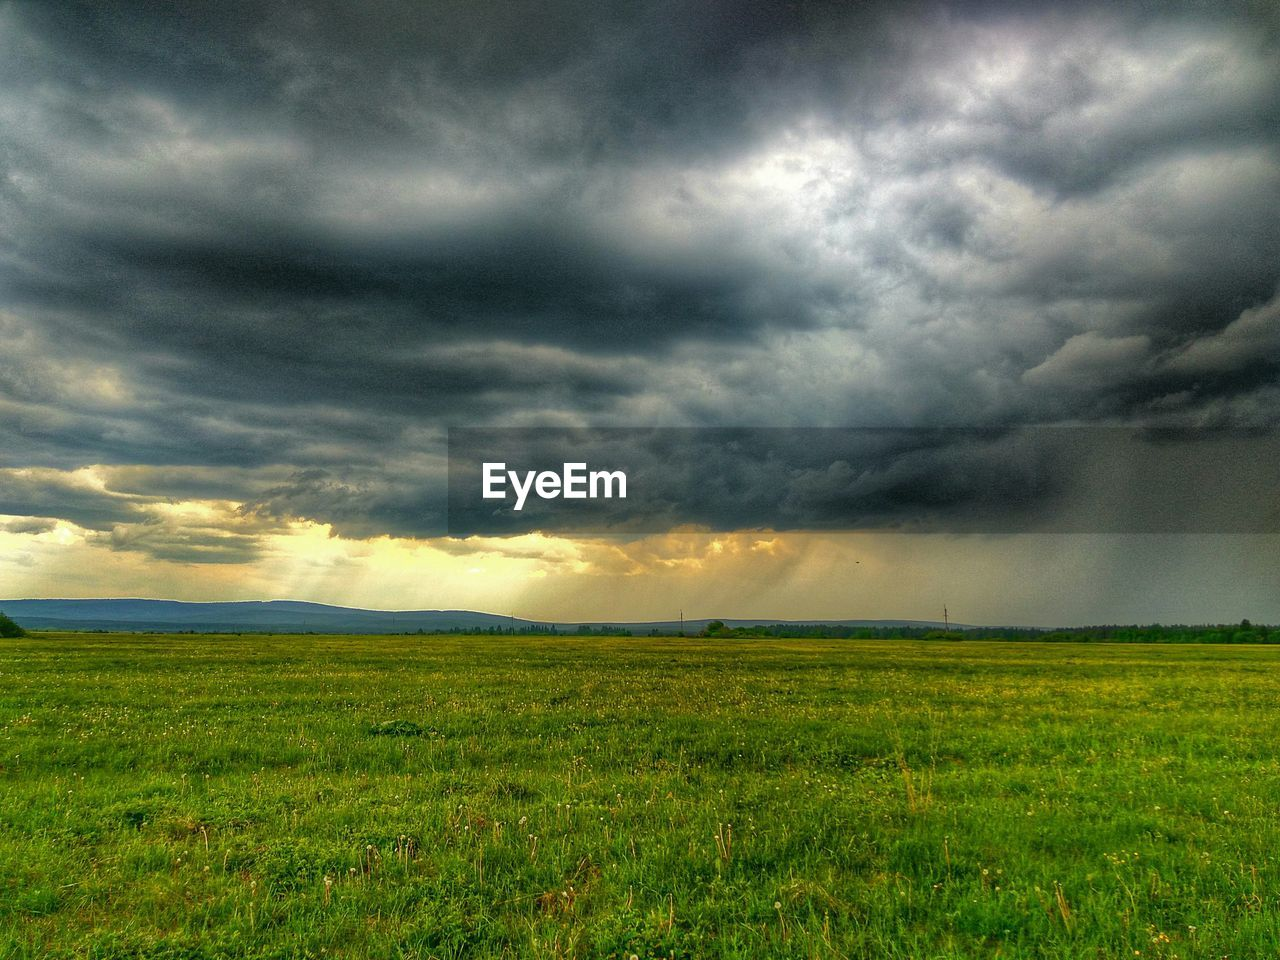 landscape, field, nature, beauty in nature, sky, scenics, tranquil scene, tranquility, cloud - sky, no people, grass, agriculture, outdoors, storm cloud, rural scene, growth, day, tree